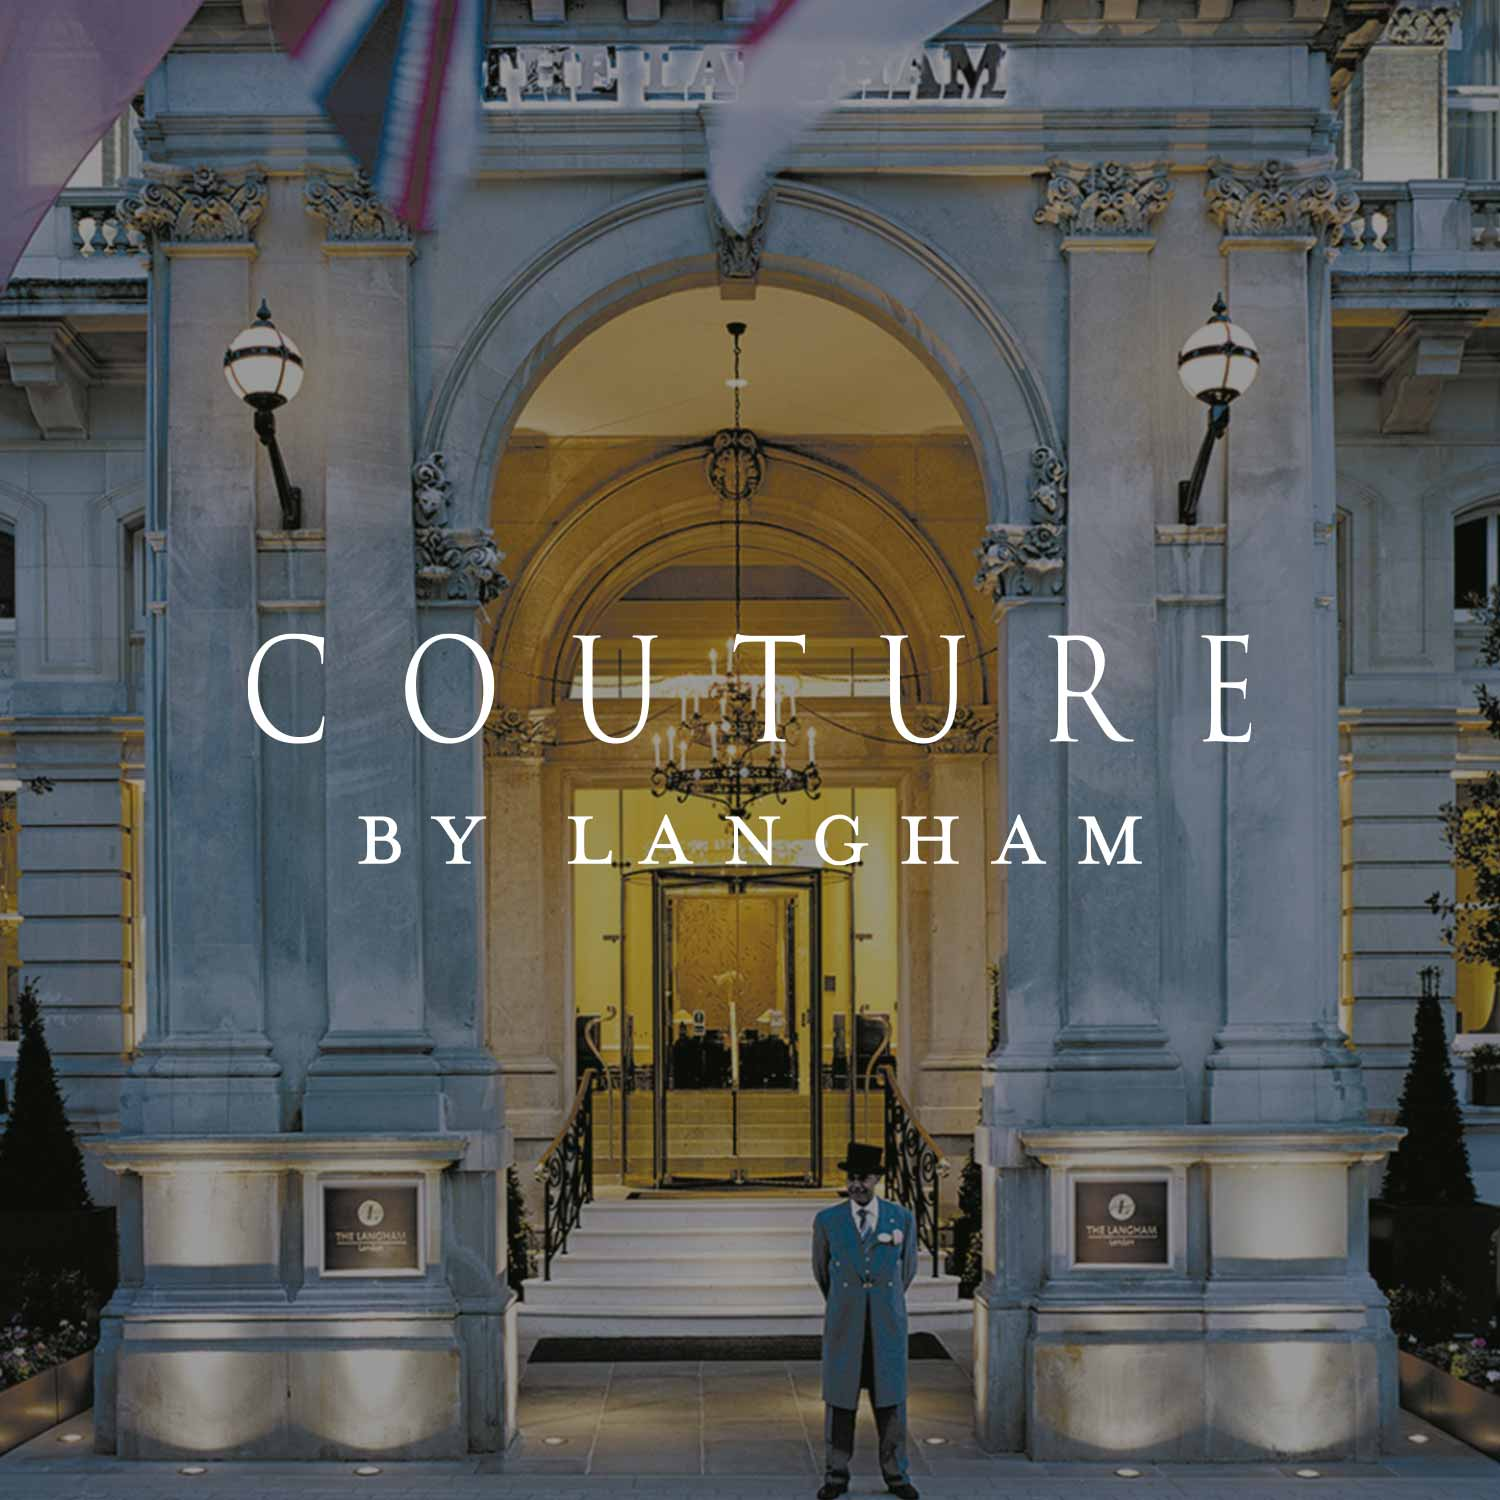 Langham-couture-1500